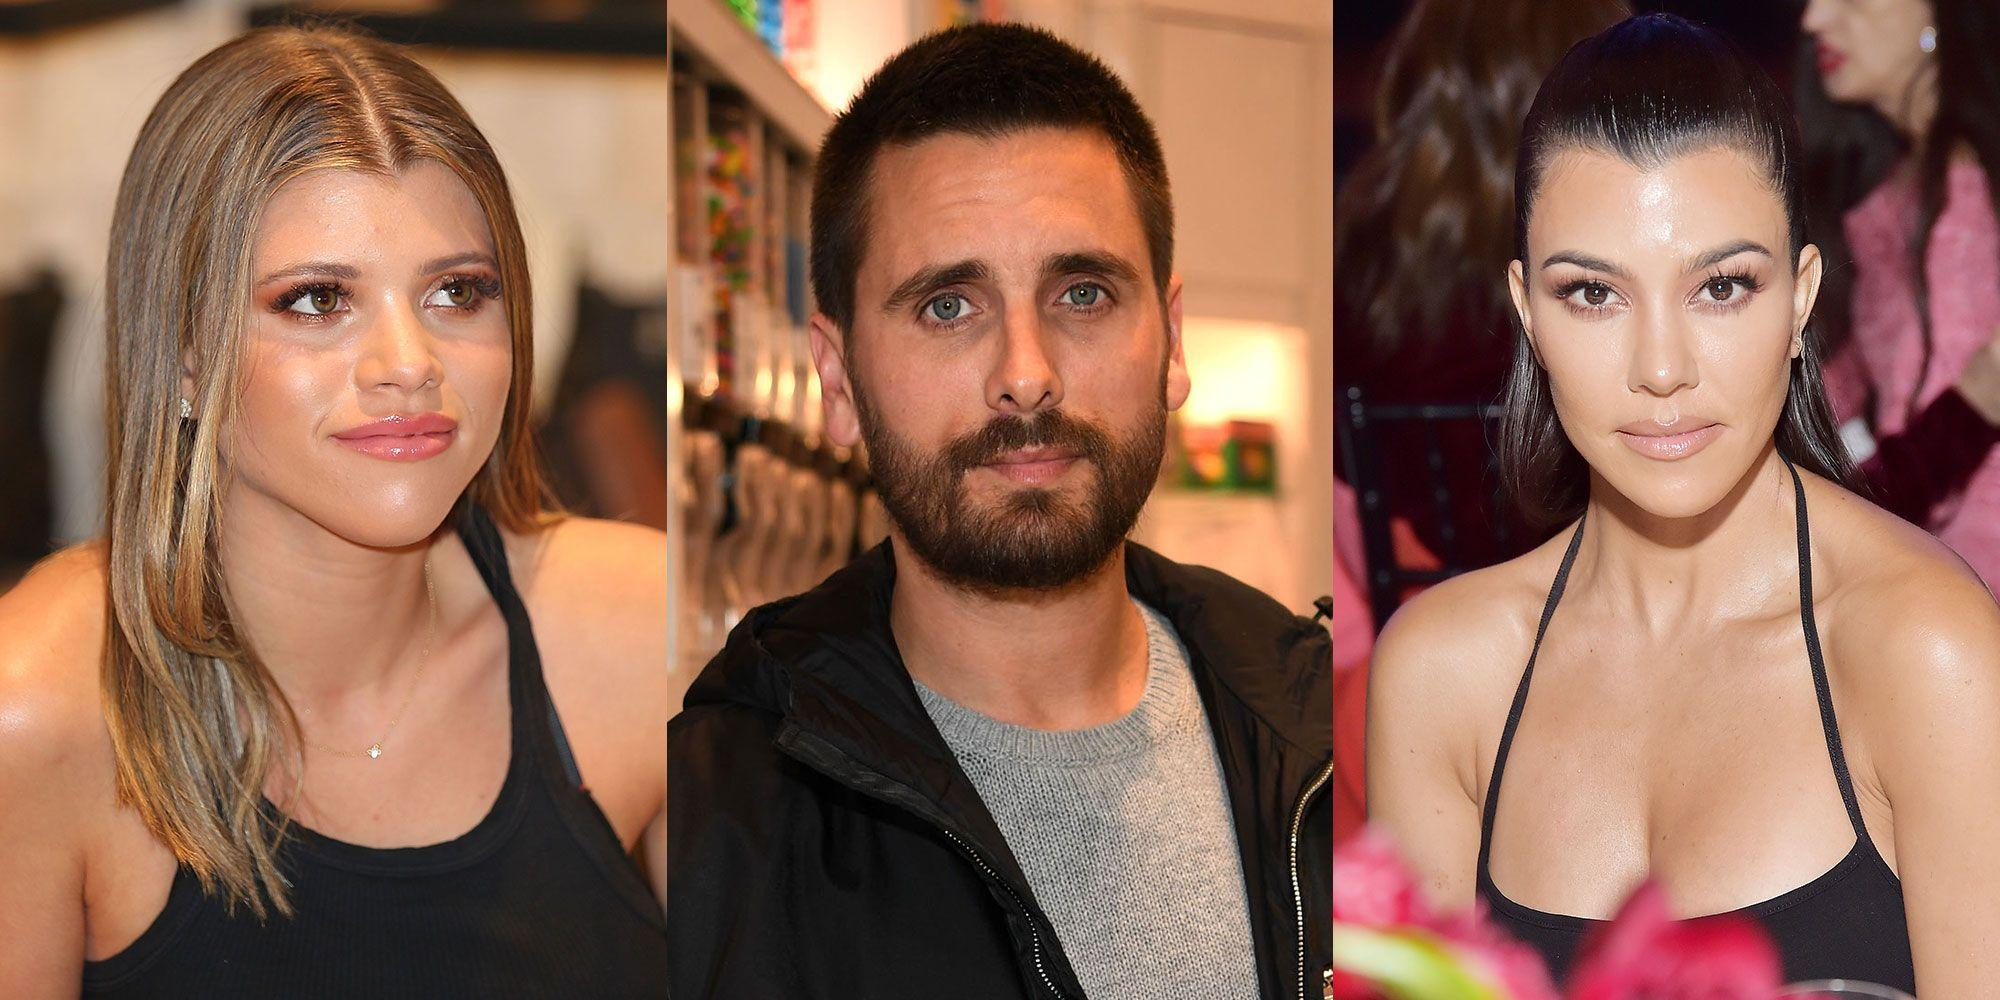 Sofia Richie Willing To Join Forces With Kourtney Kardashian And Help Scott Disick After Rehab Stint - Here's Why She's 'Proud' Of Him!